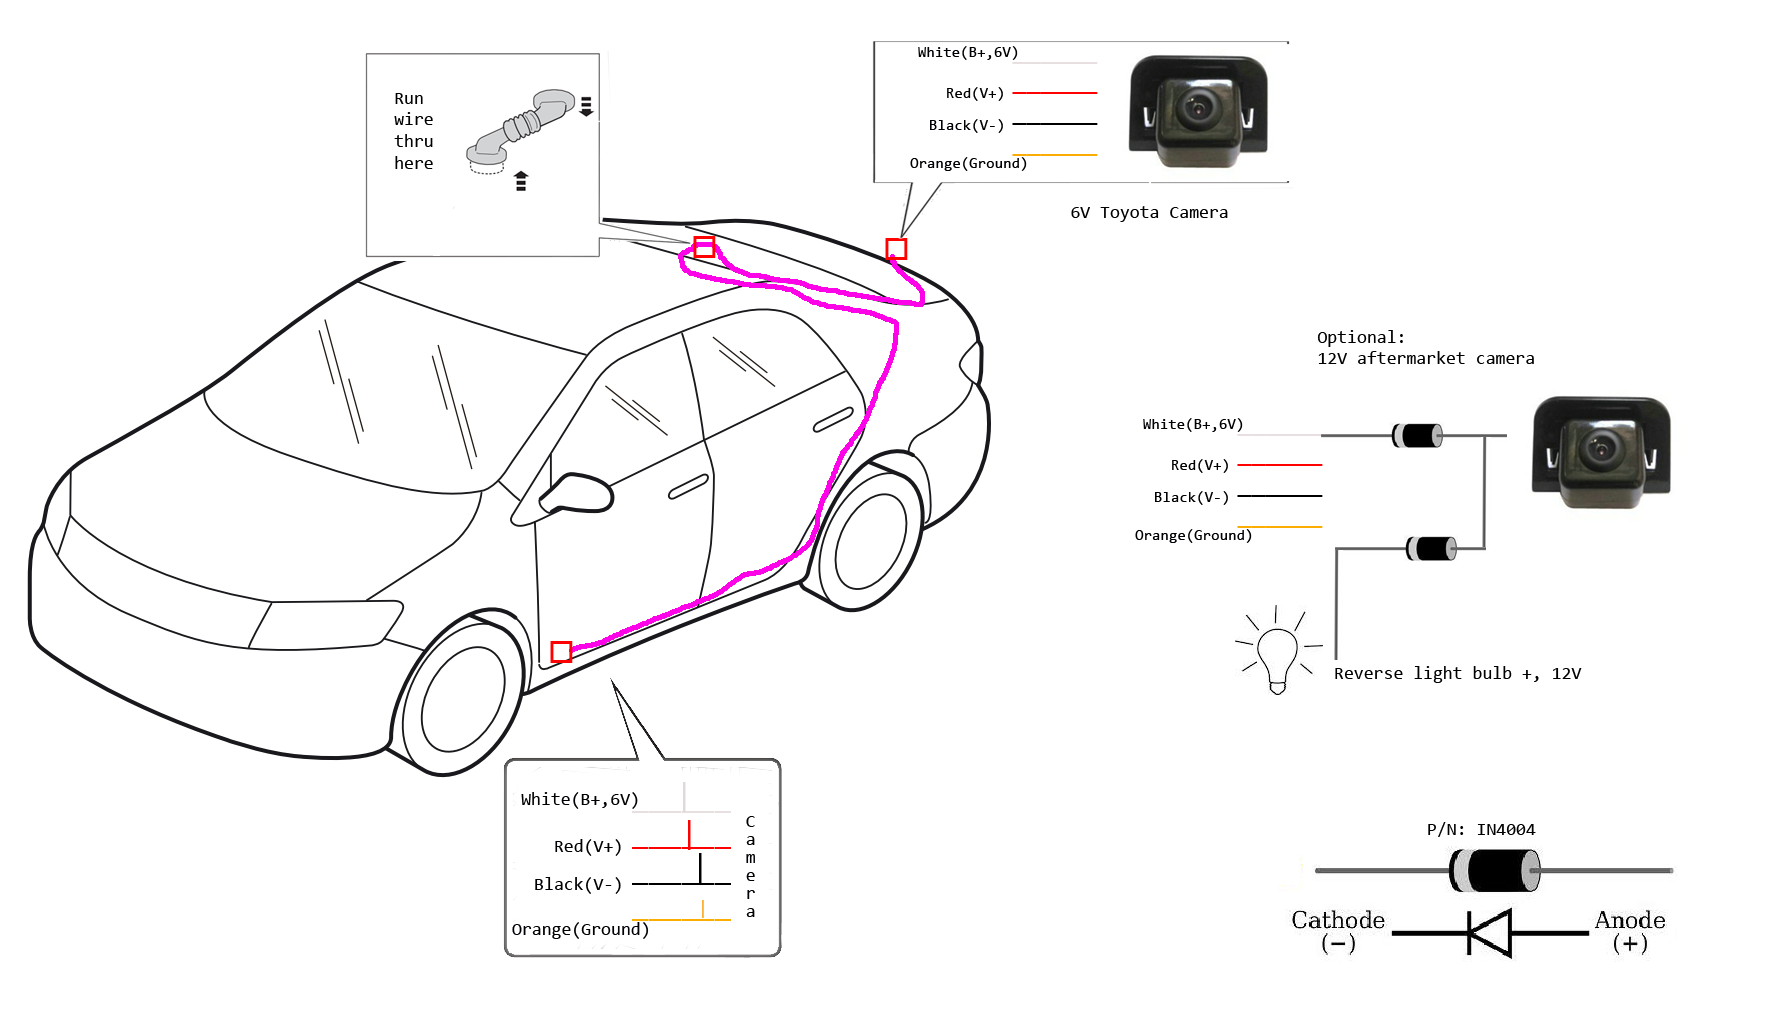 Reverse camera wiring diagram toyota diy wiring diagrams back up camera for 2012 prius two touch screen non nav page 4 rh priuschat com toyota rav4 reverse camera wiring diagram toyota 86 reverse camera wiring asfbconference2016 Choice Image